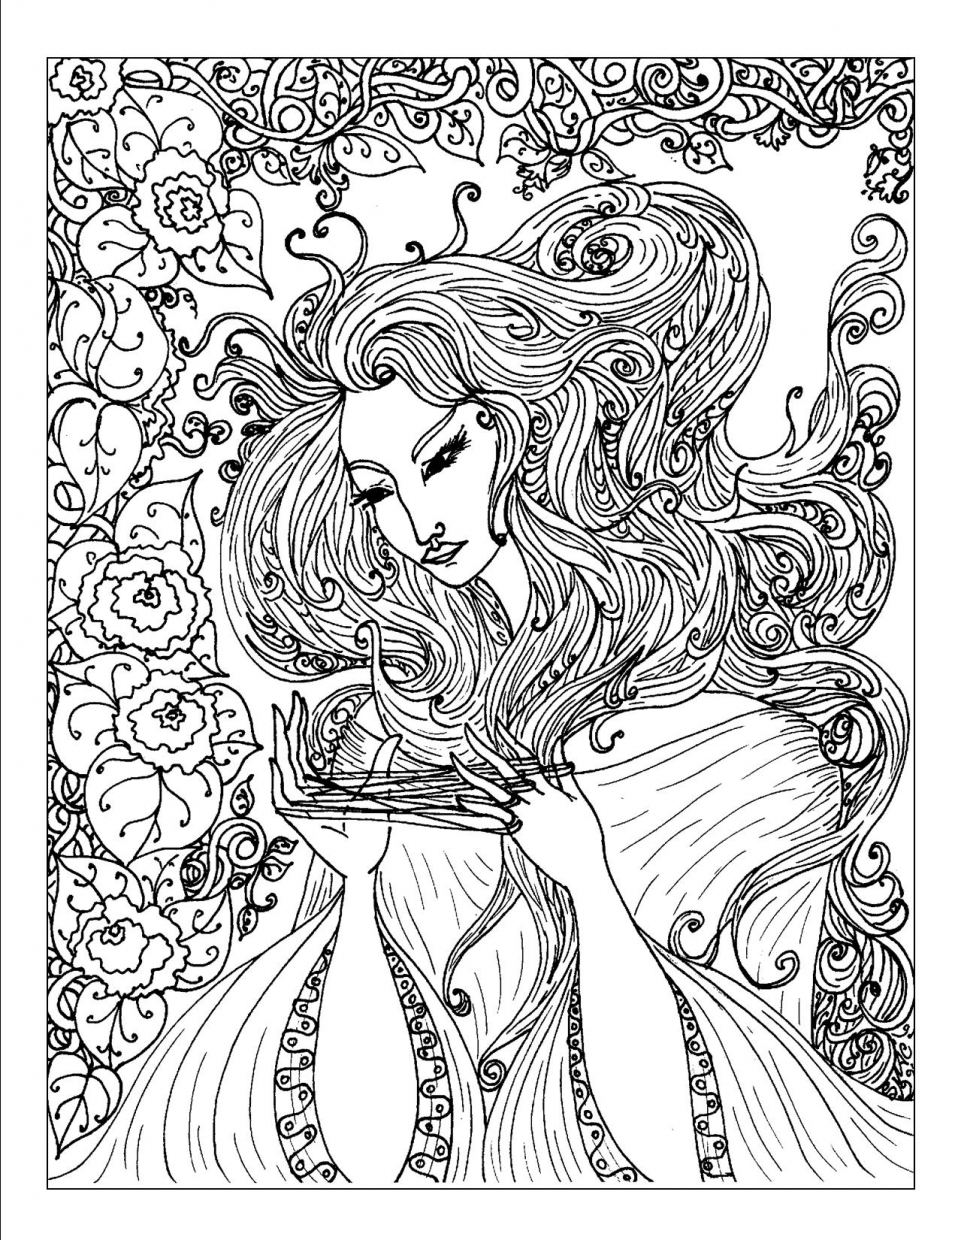 free complex coloring pages print download complex coloring pages for kids and adults free pages complex coloring